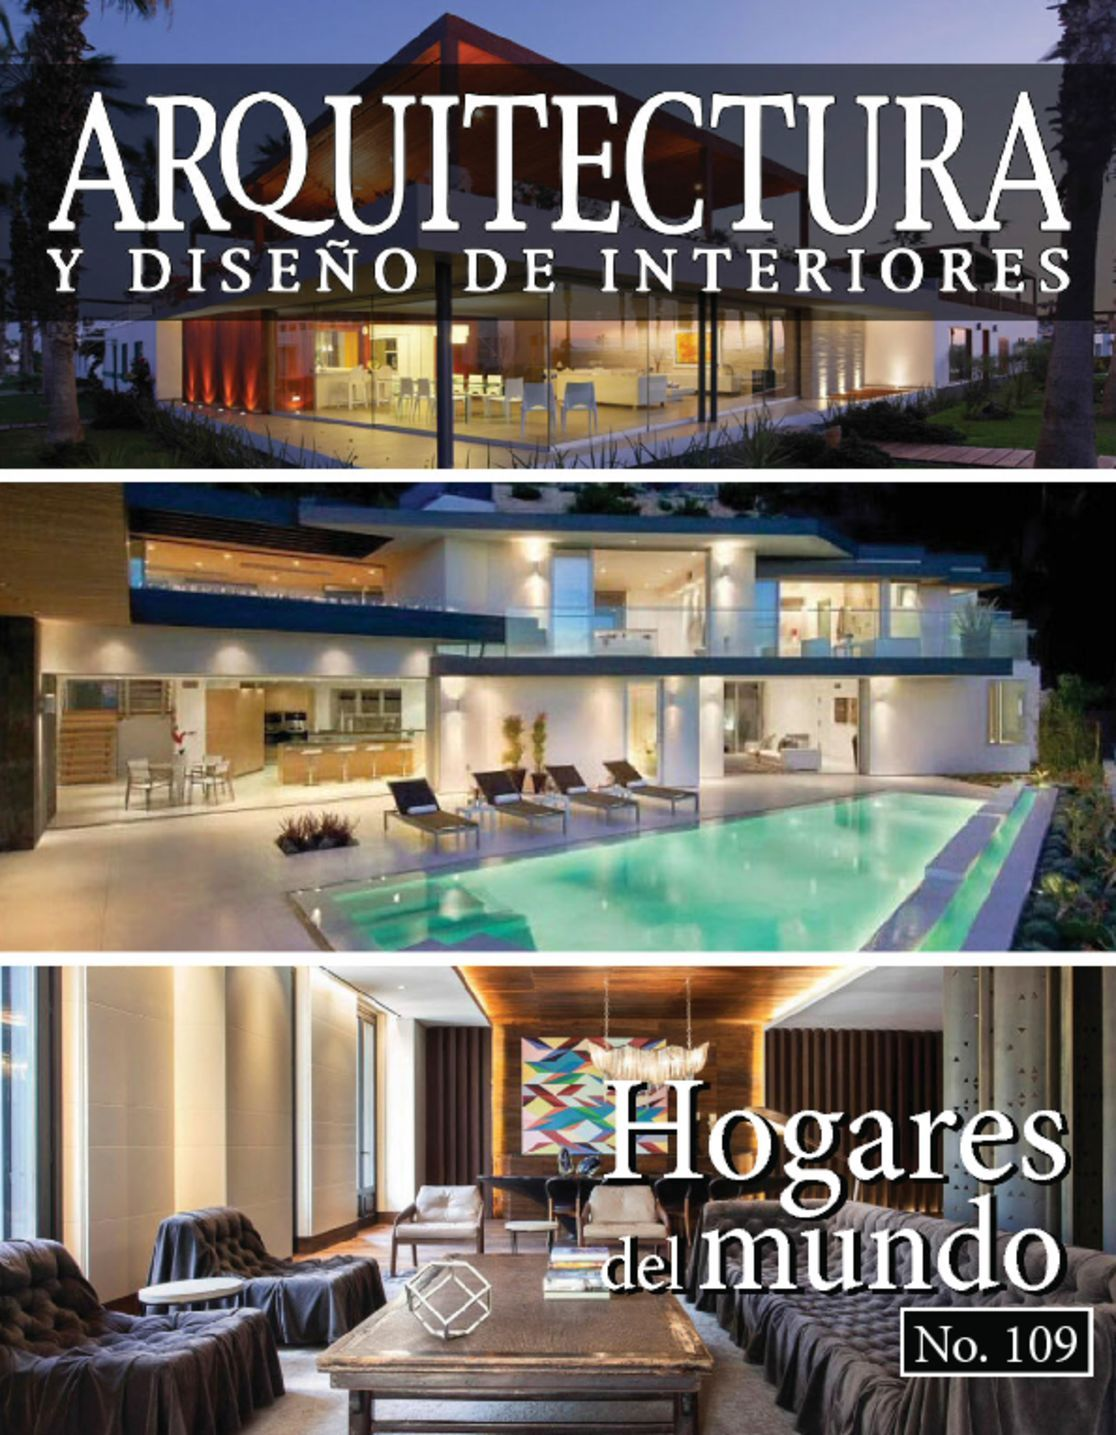 Arquitectura y dise o de interiores magazine digital for Diseno de interiores